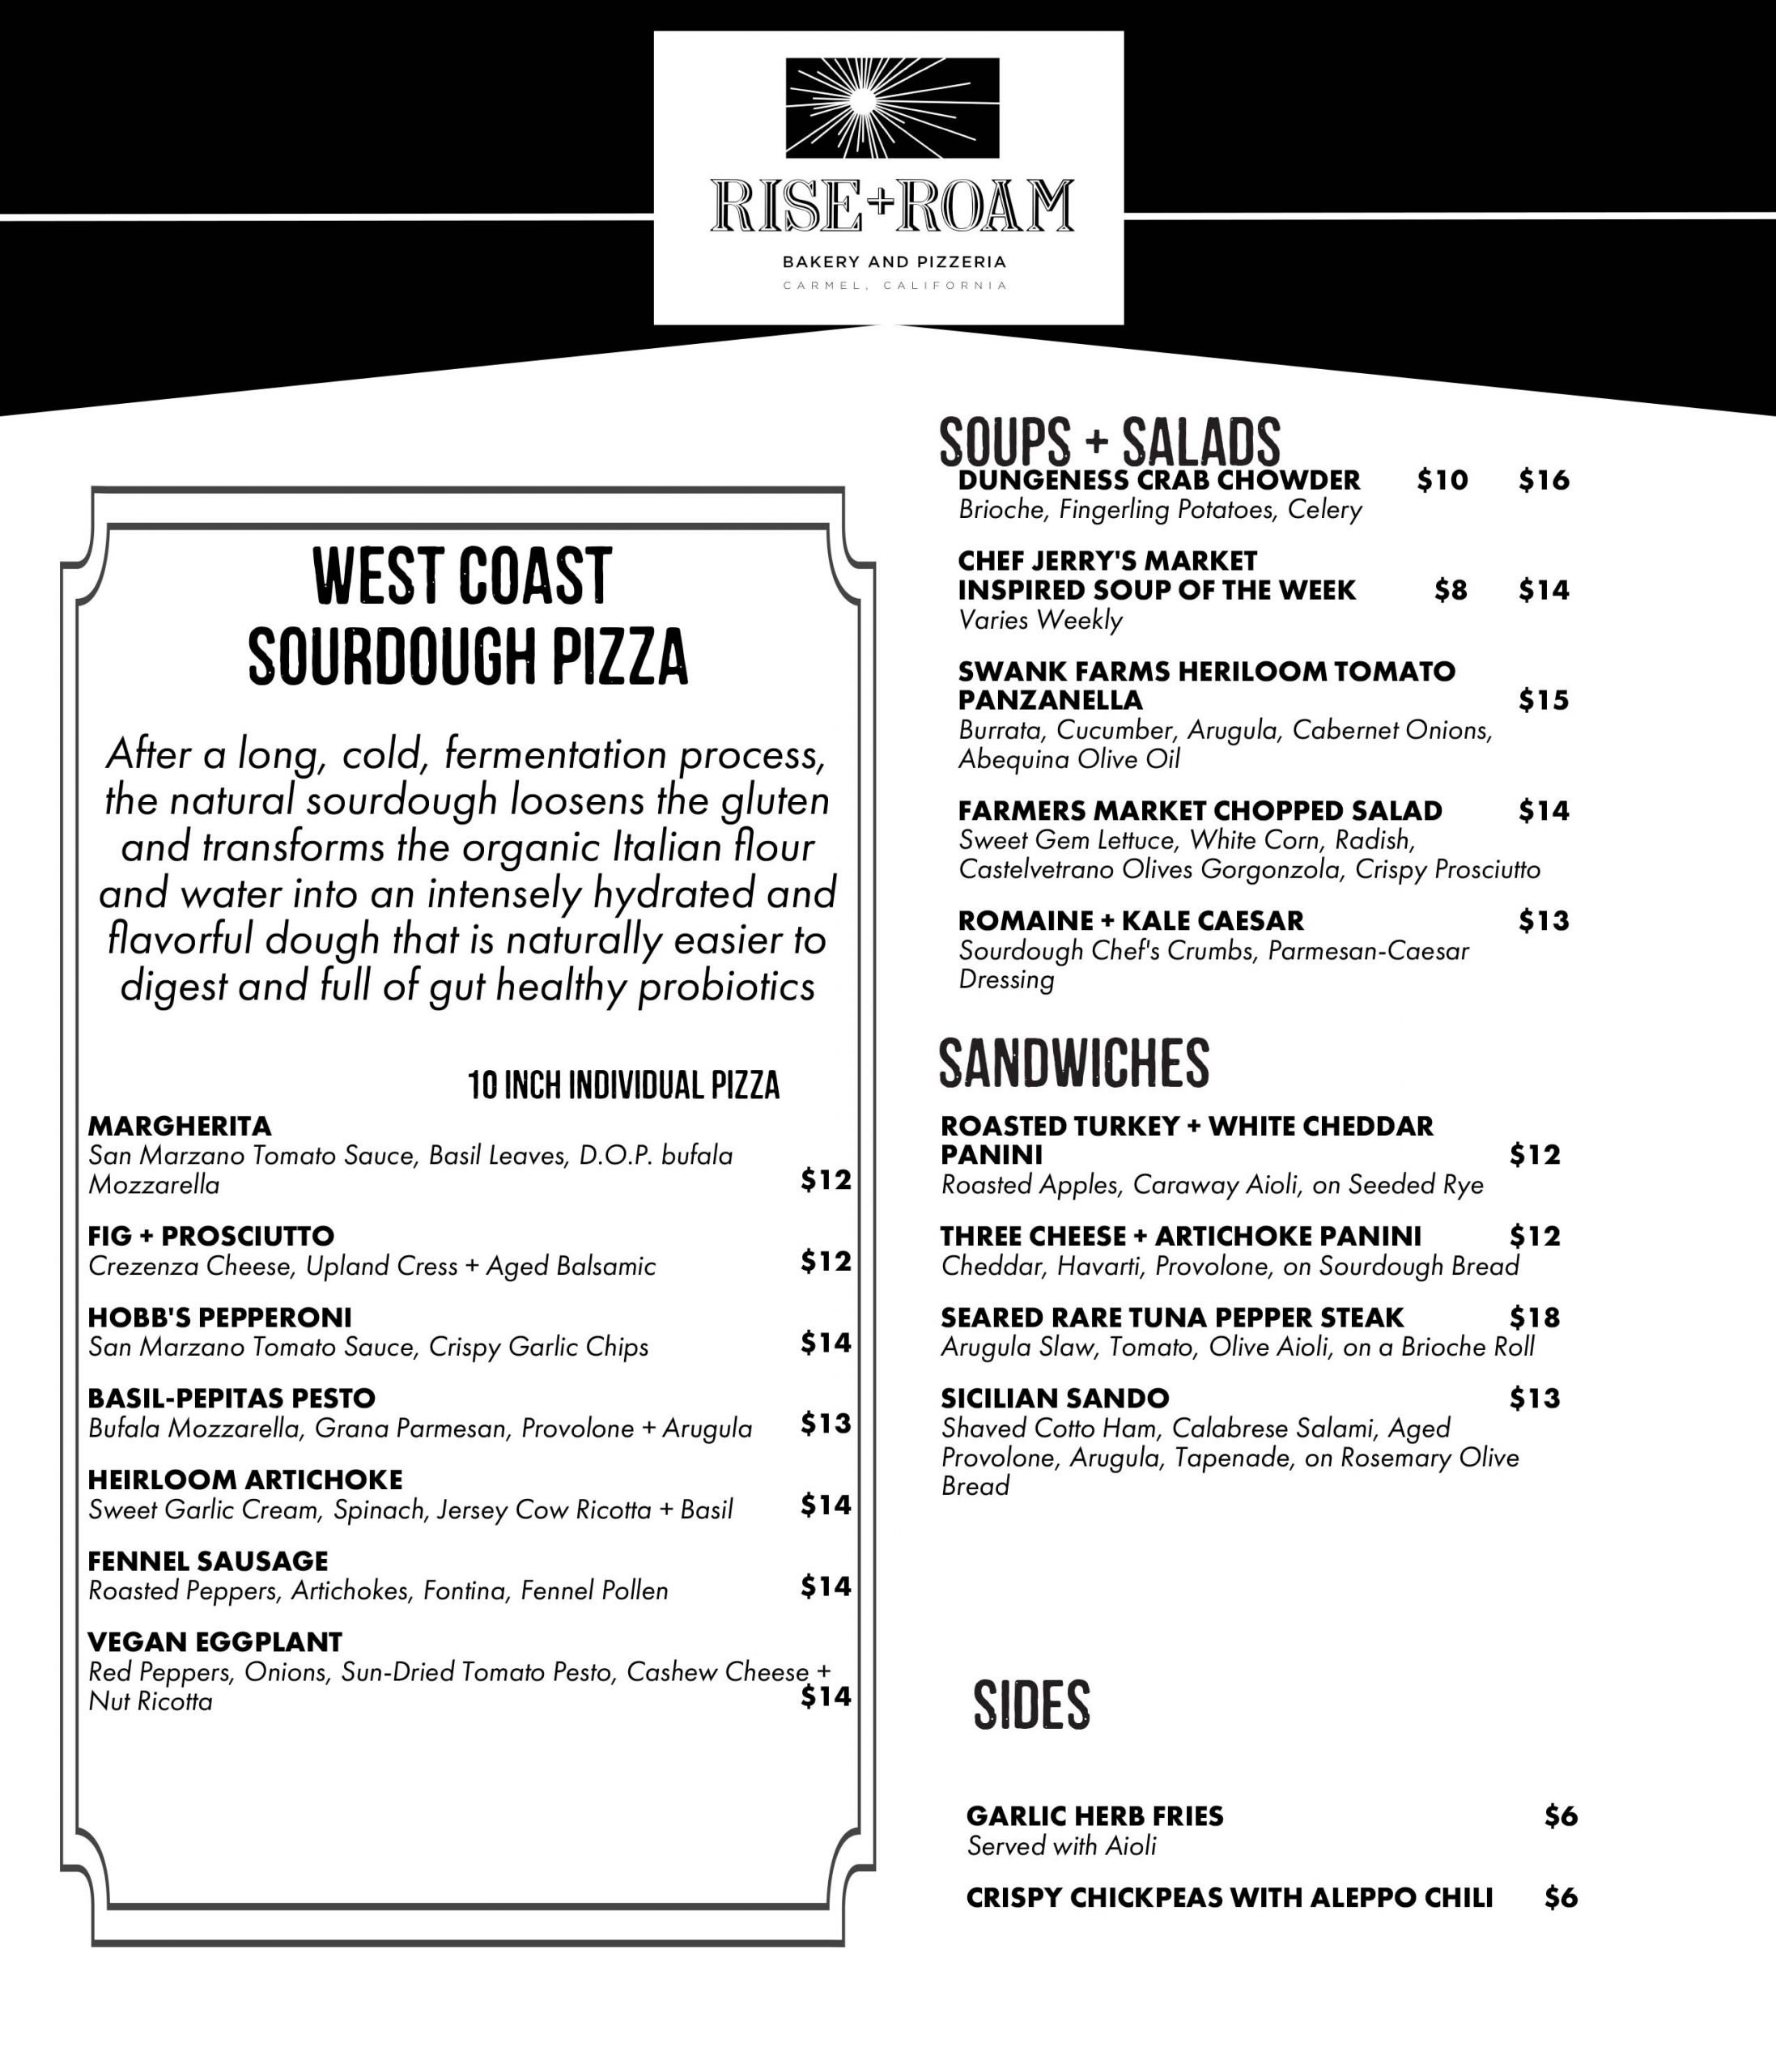 Rise + Roam Pizzeria and Bakery Menu Page One